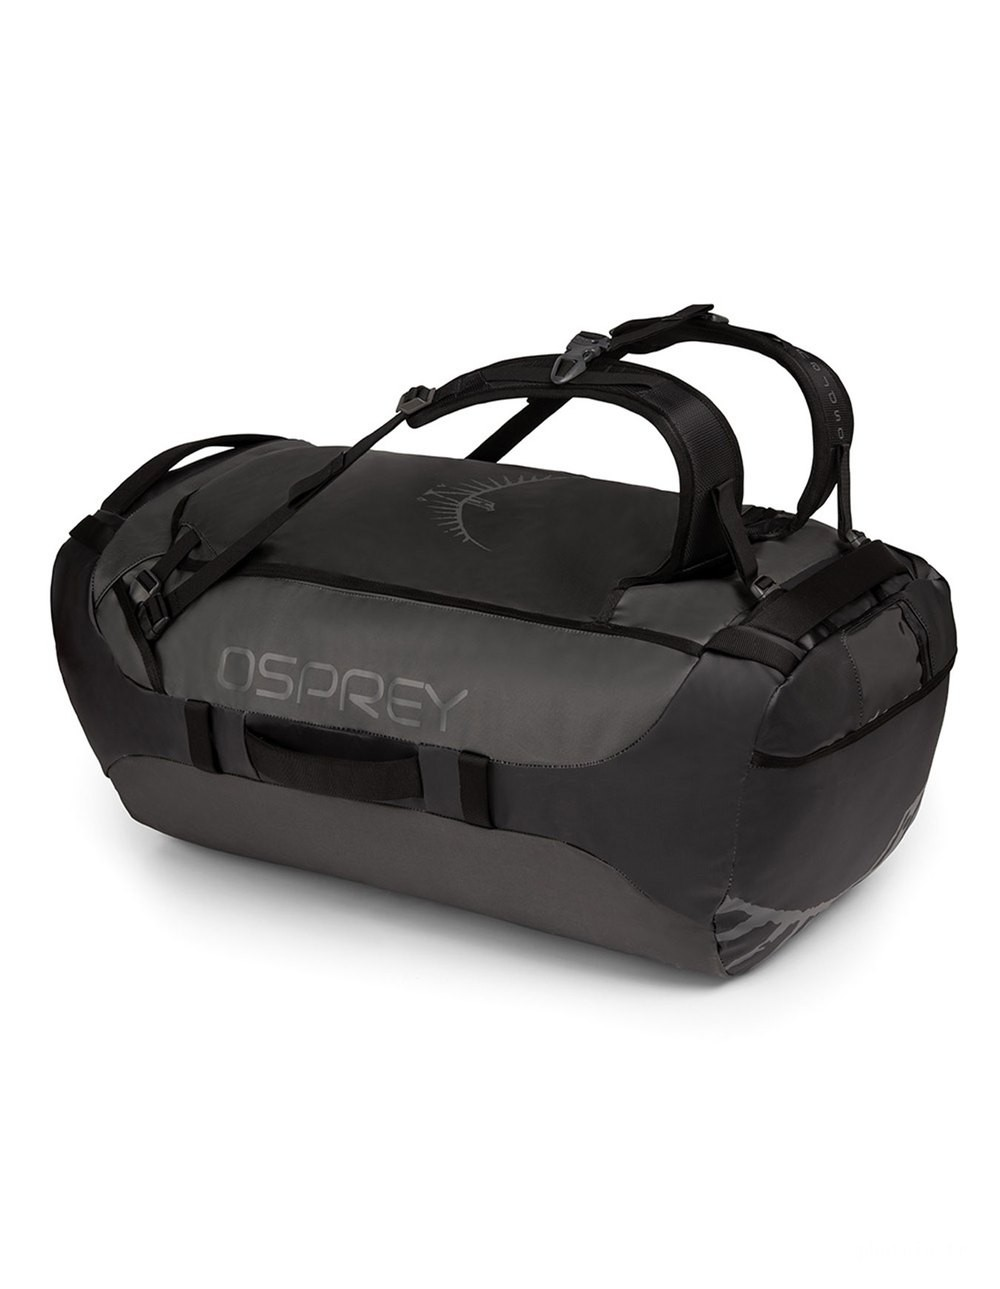 [BLACK FRIDAY] Osprey Duffel bag - Transporter 95 Black - Marque